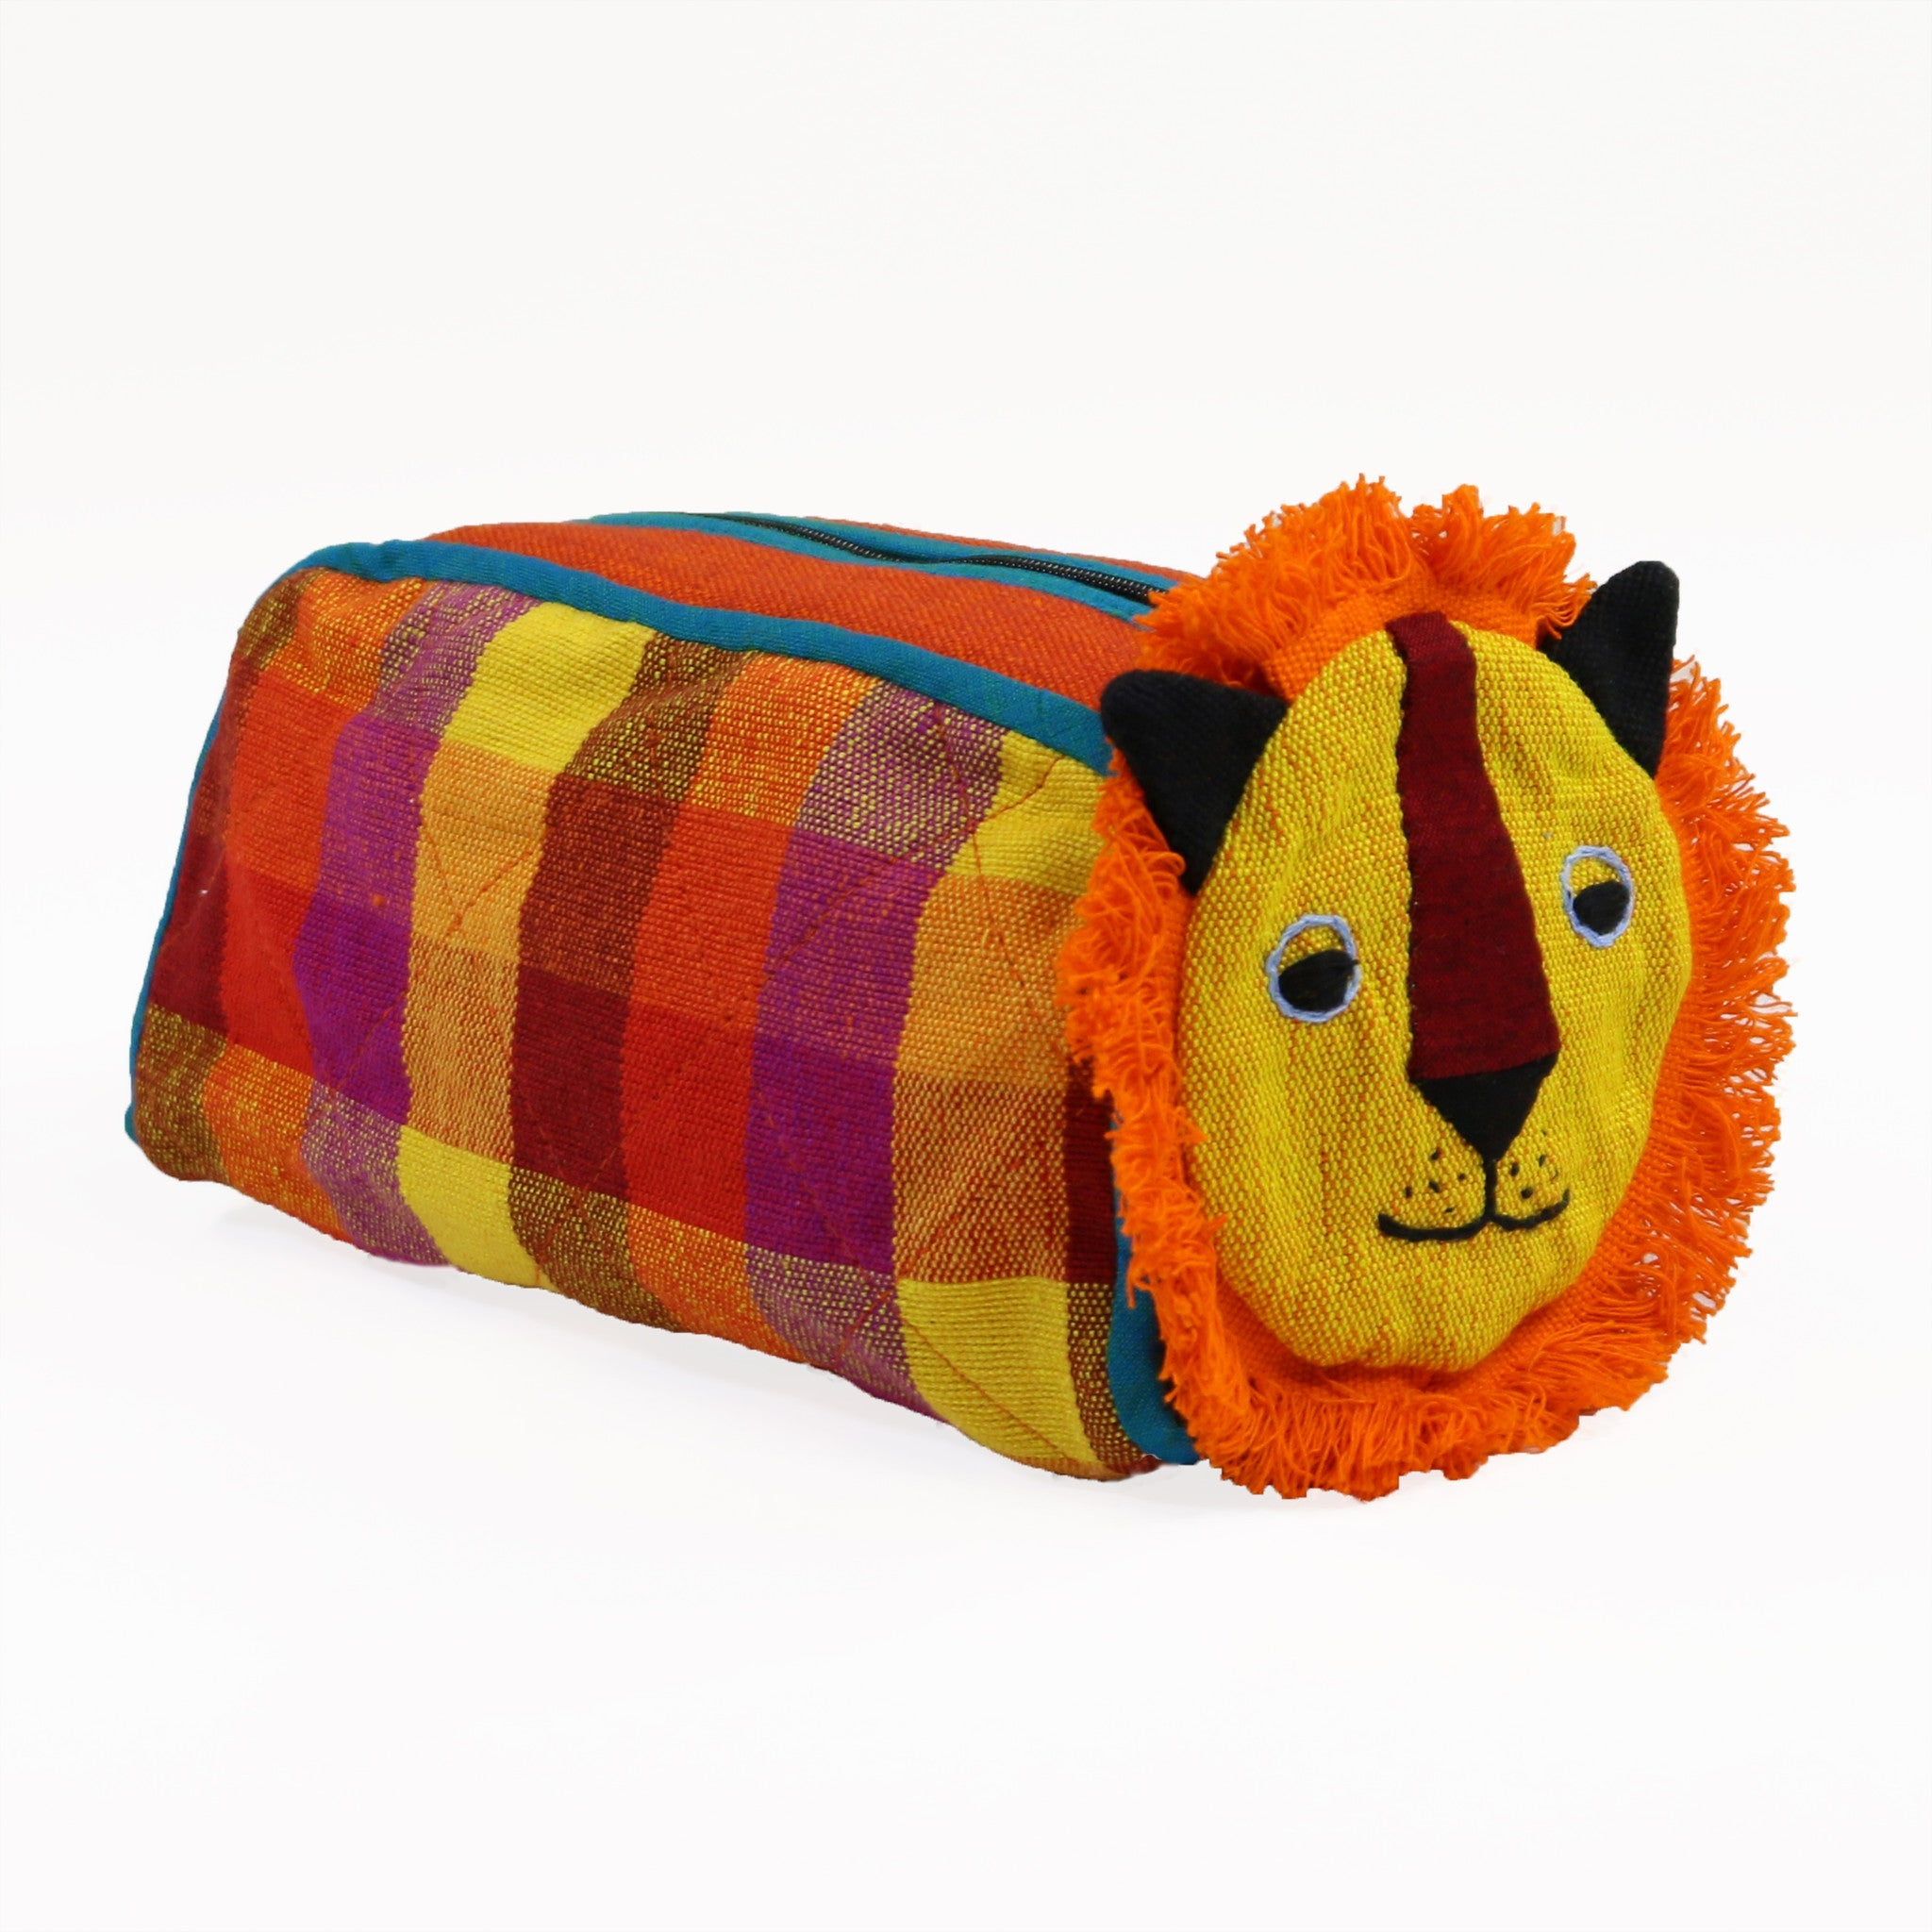 Lion Zip Pouch - Fireflies fabric